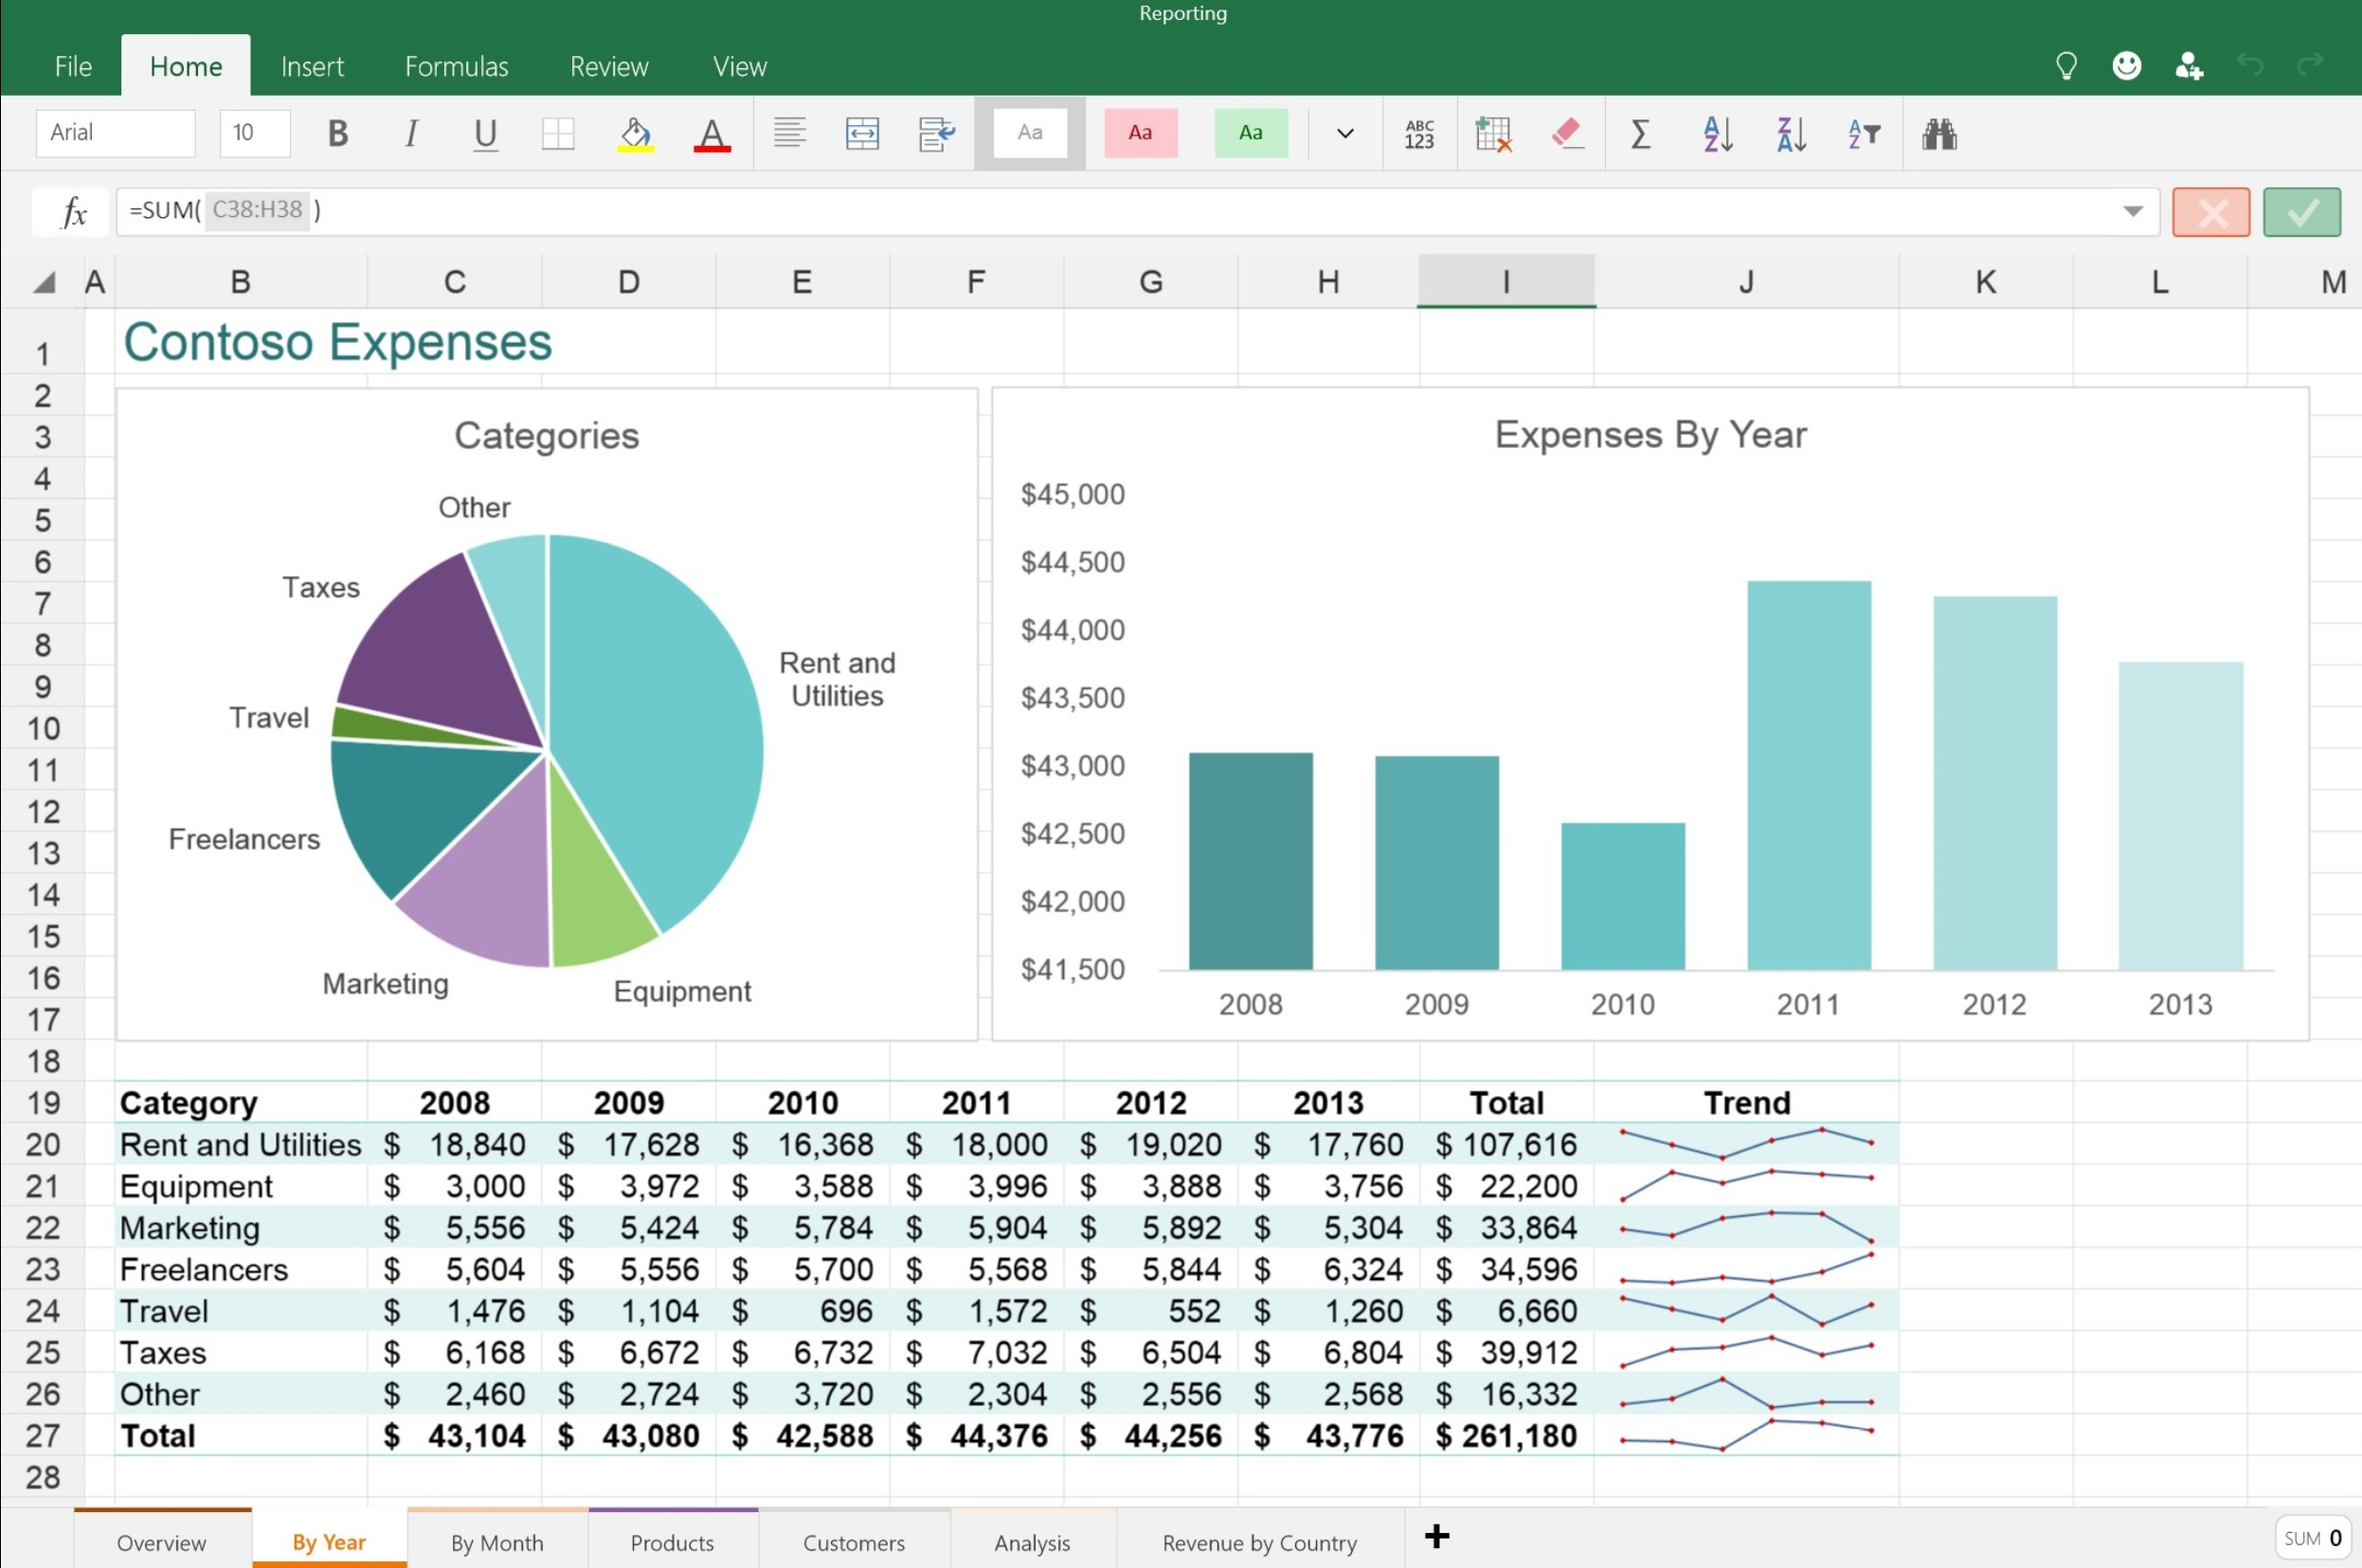 Ediblewildsus  Winsome Features Available In The New Word Excel And Powerpoint Apps For  With Exquisite Excel Touch App  With Breathtaking Find Last Row In Excel Vba Also How To Do Percentage On Excel In Addition Excel If Not A Number And Data Manipulation Excel As Well As Exponents On Excel Additionally Compare Two Spreadsheets In Excel From Mspowerusercom With Ediblewildsus  Exquisite Features Available In The New Word Excel And Powerpoint Apps For  With Breathtaking Excel Touch App  And Winsome Find Last Row In Excel Vba Also How To Do Percentage On Excel In Addition Excel If Not A Number From Mspowerusercom